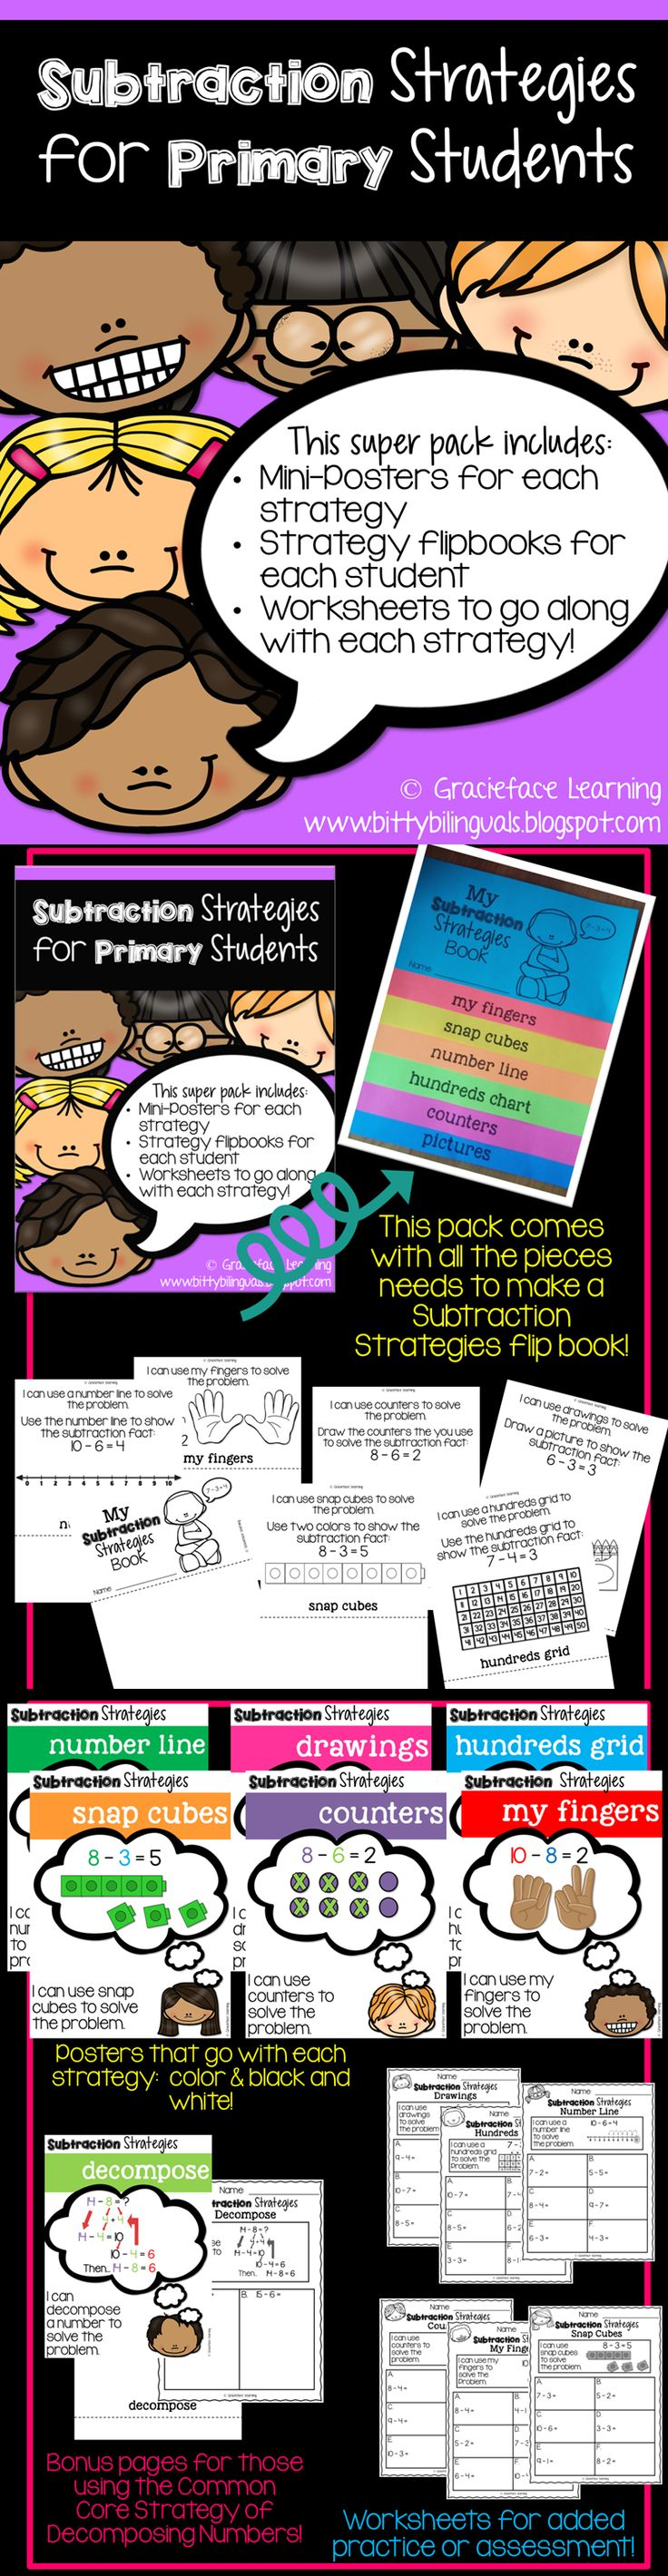 best 25 subtraction strategies ideas on pinterest subtraction